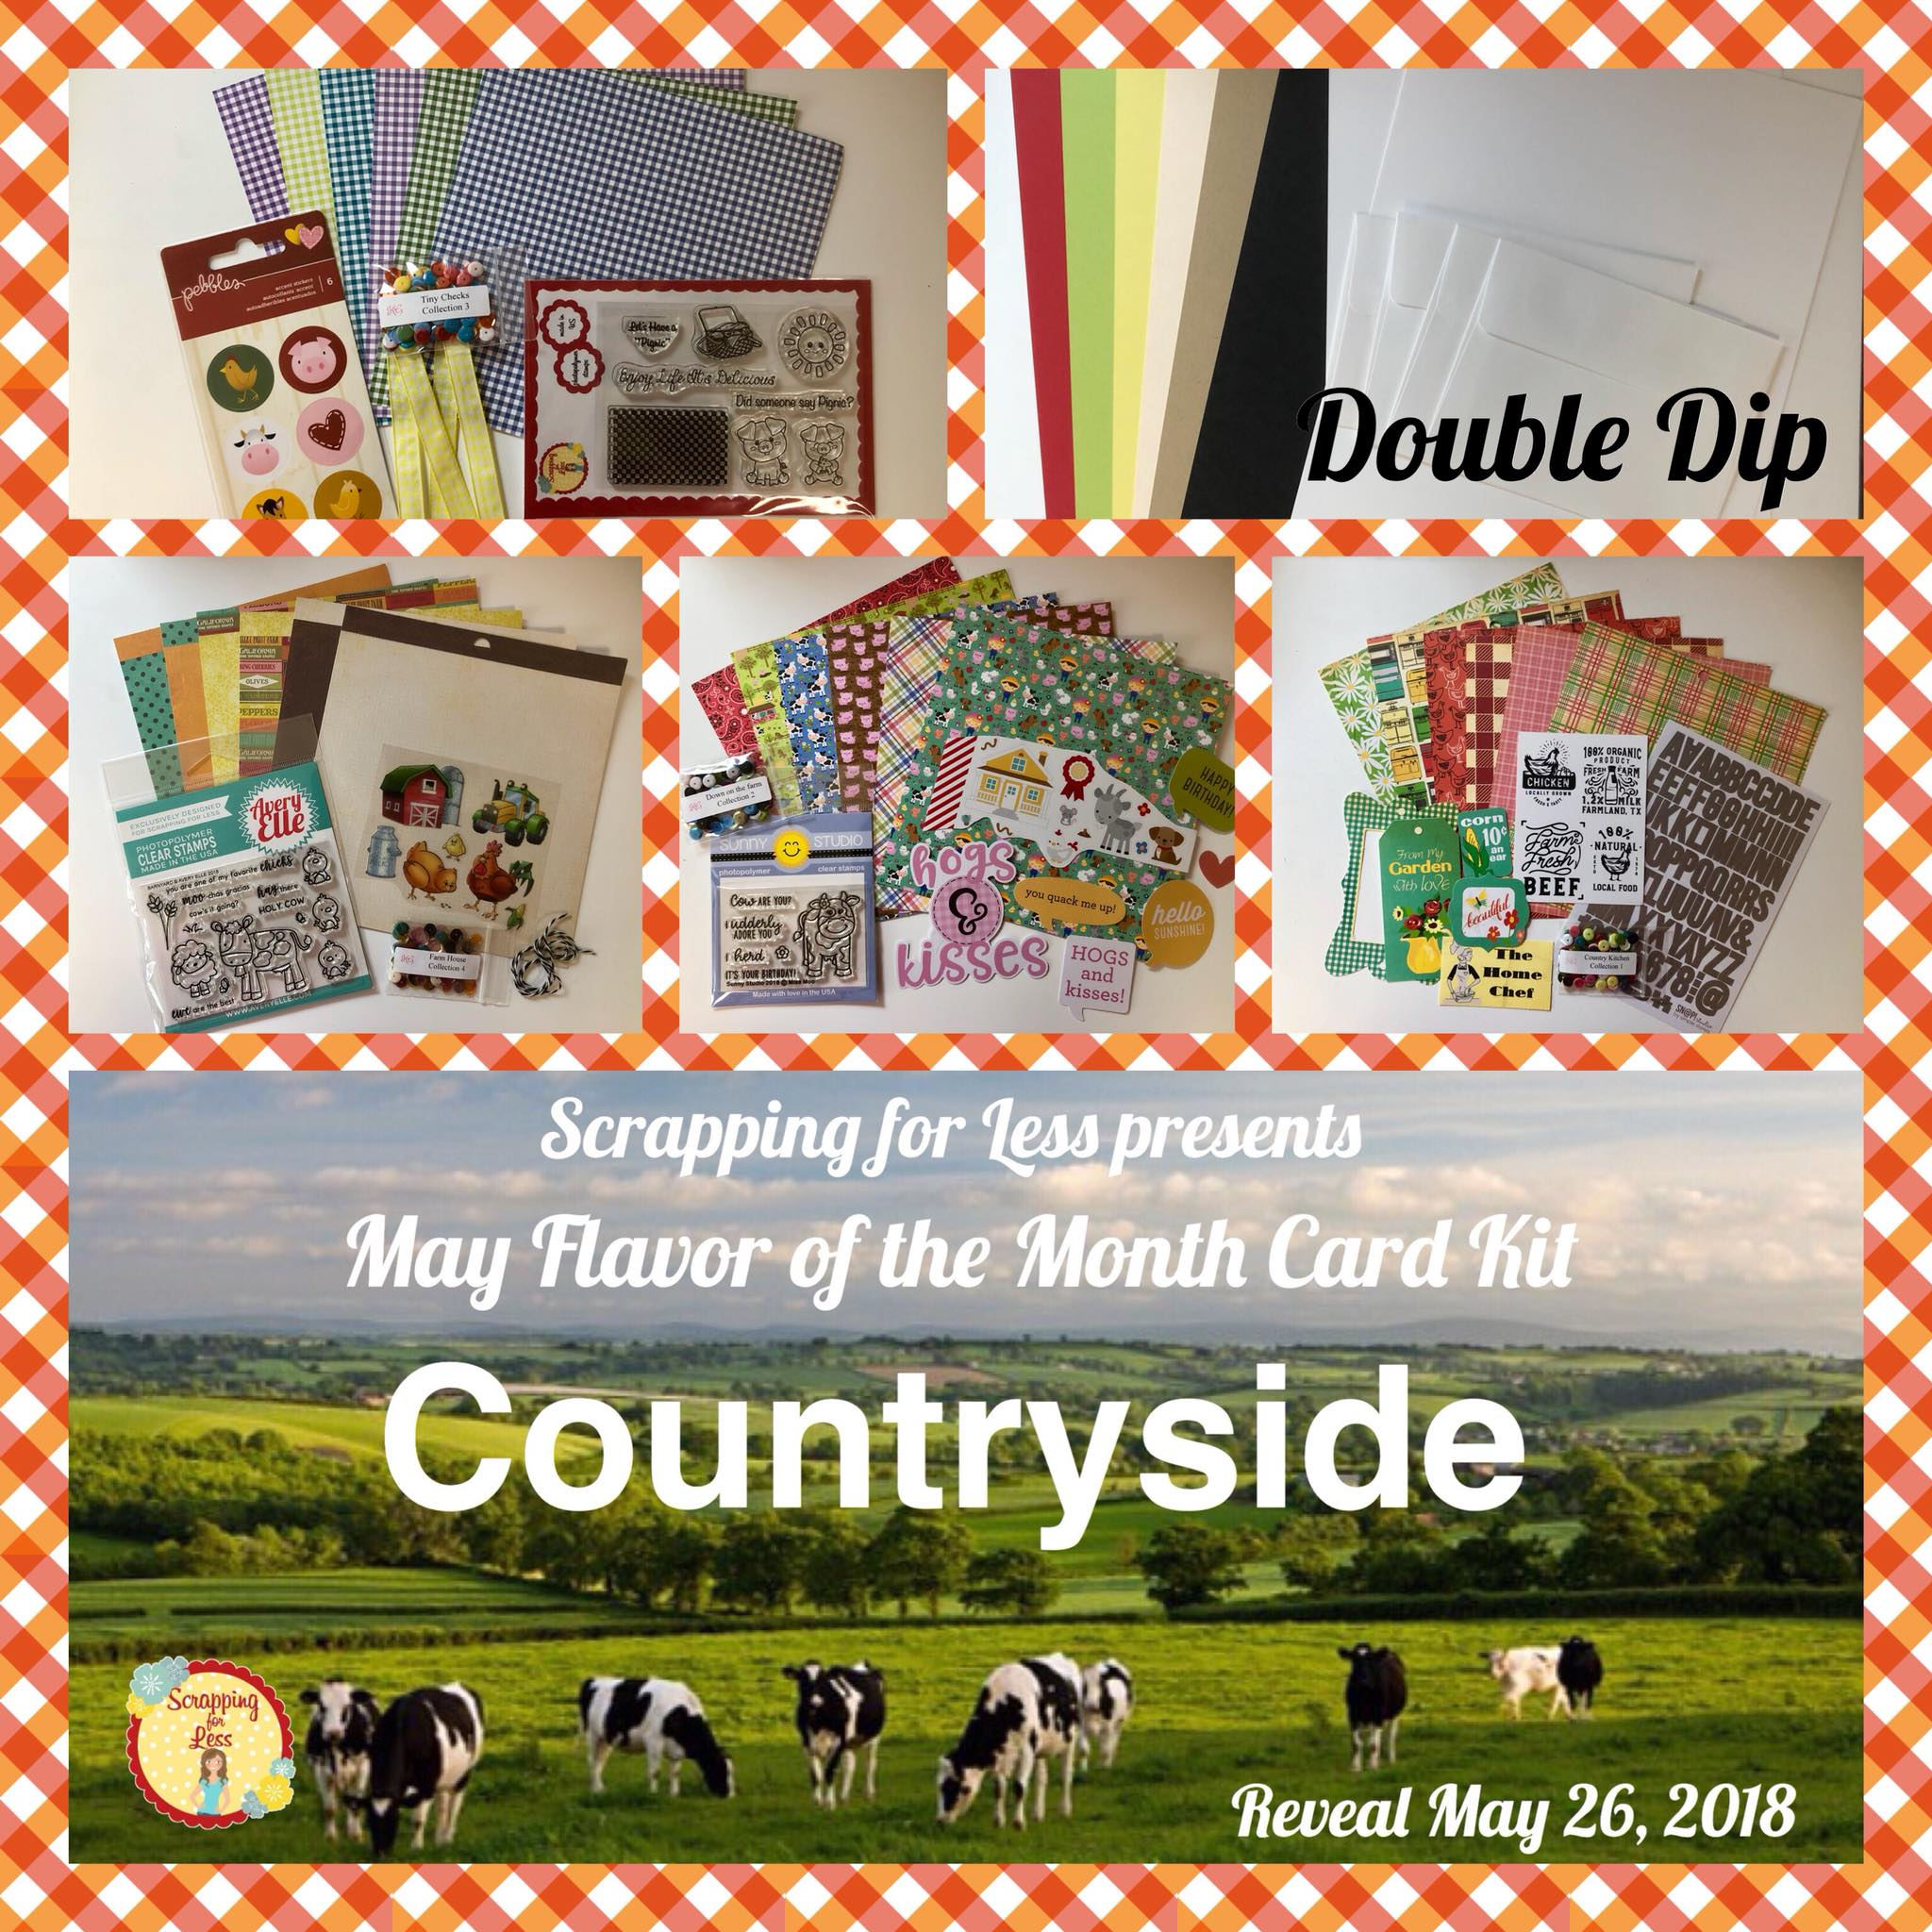 May Flavor of the Month Double Dip: Countryside